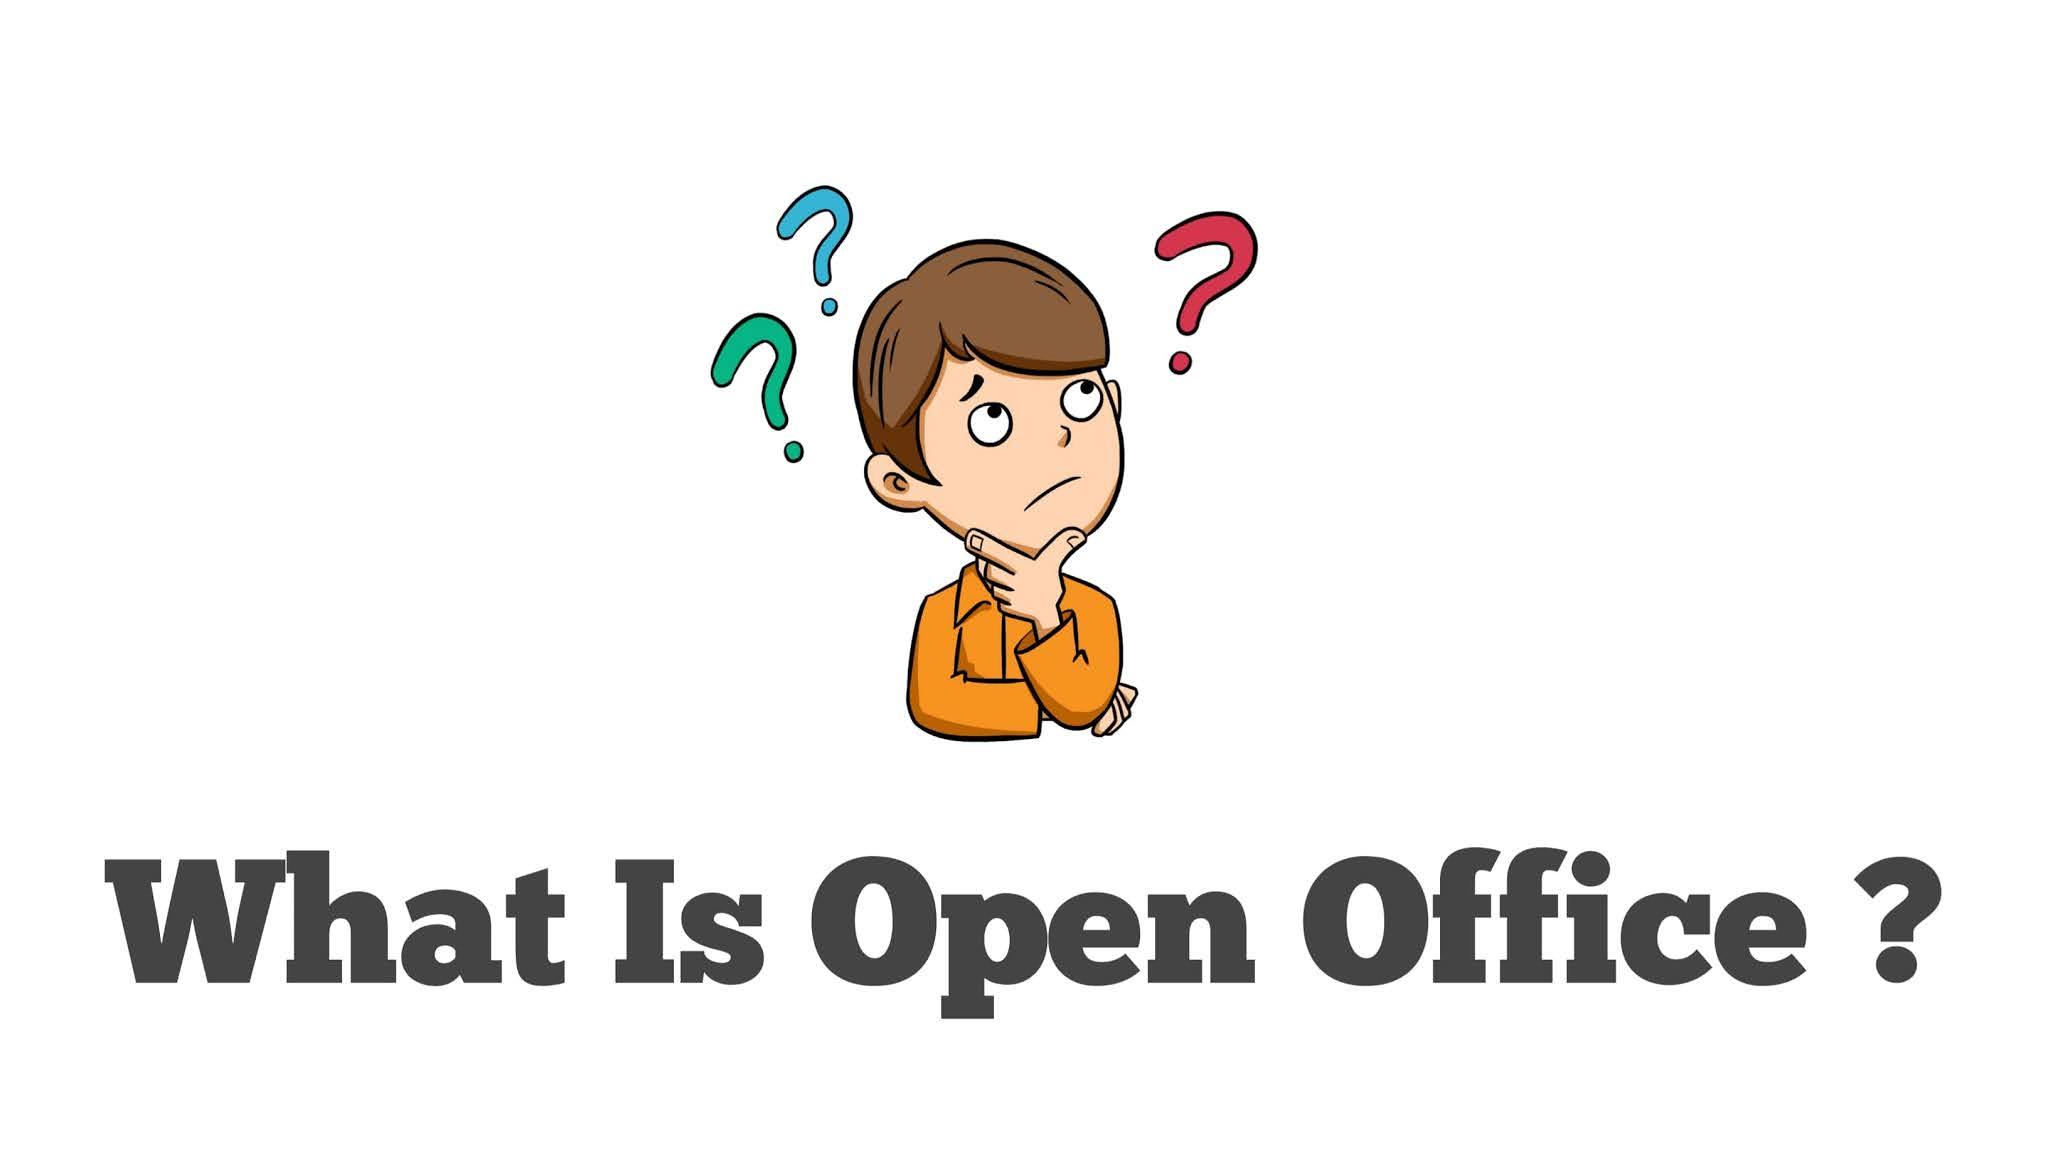 What is open office